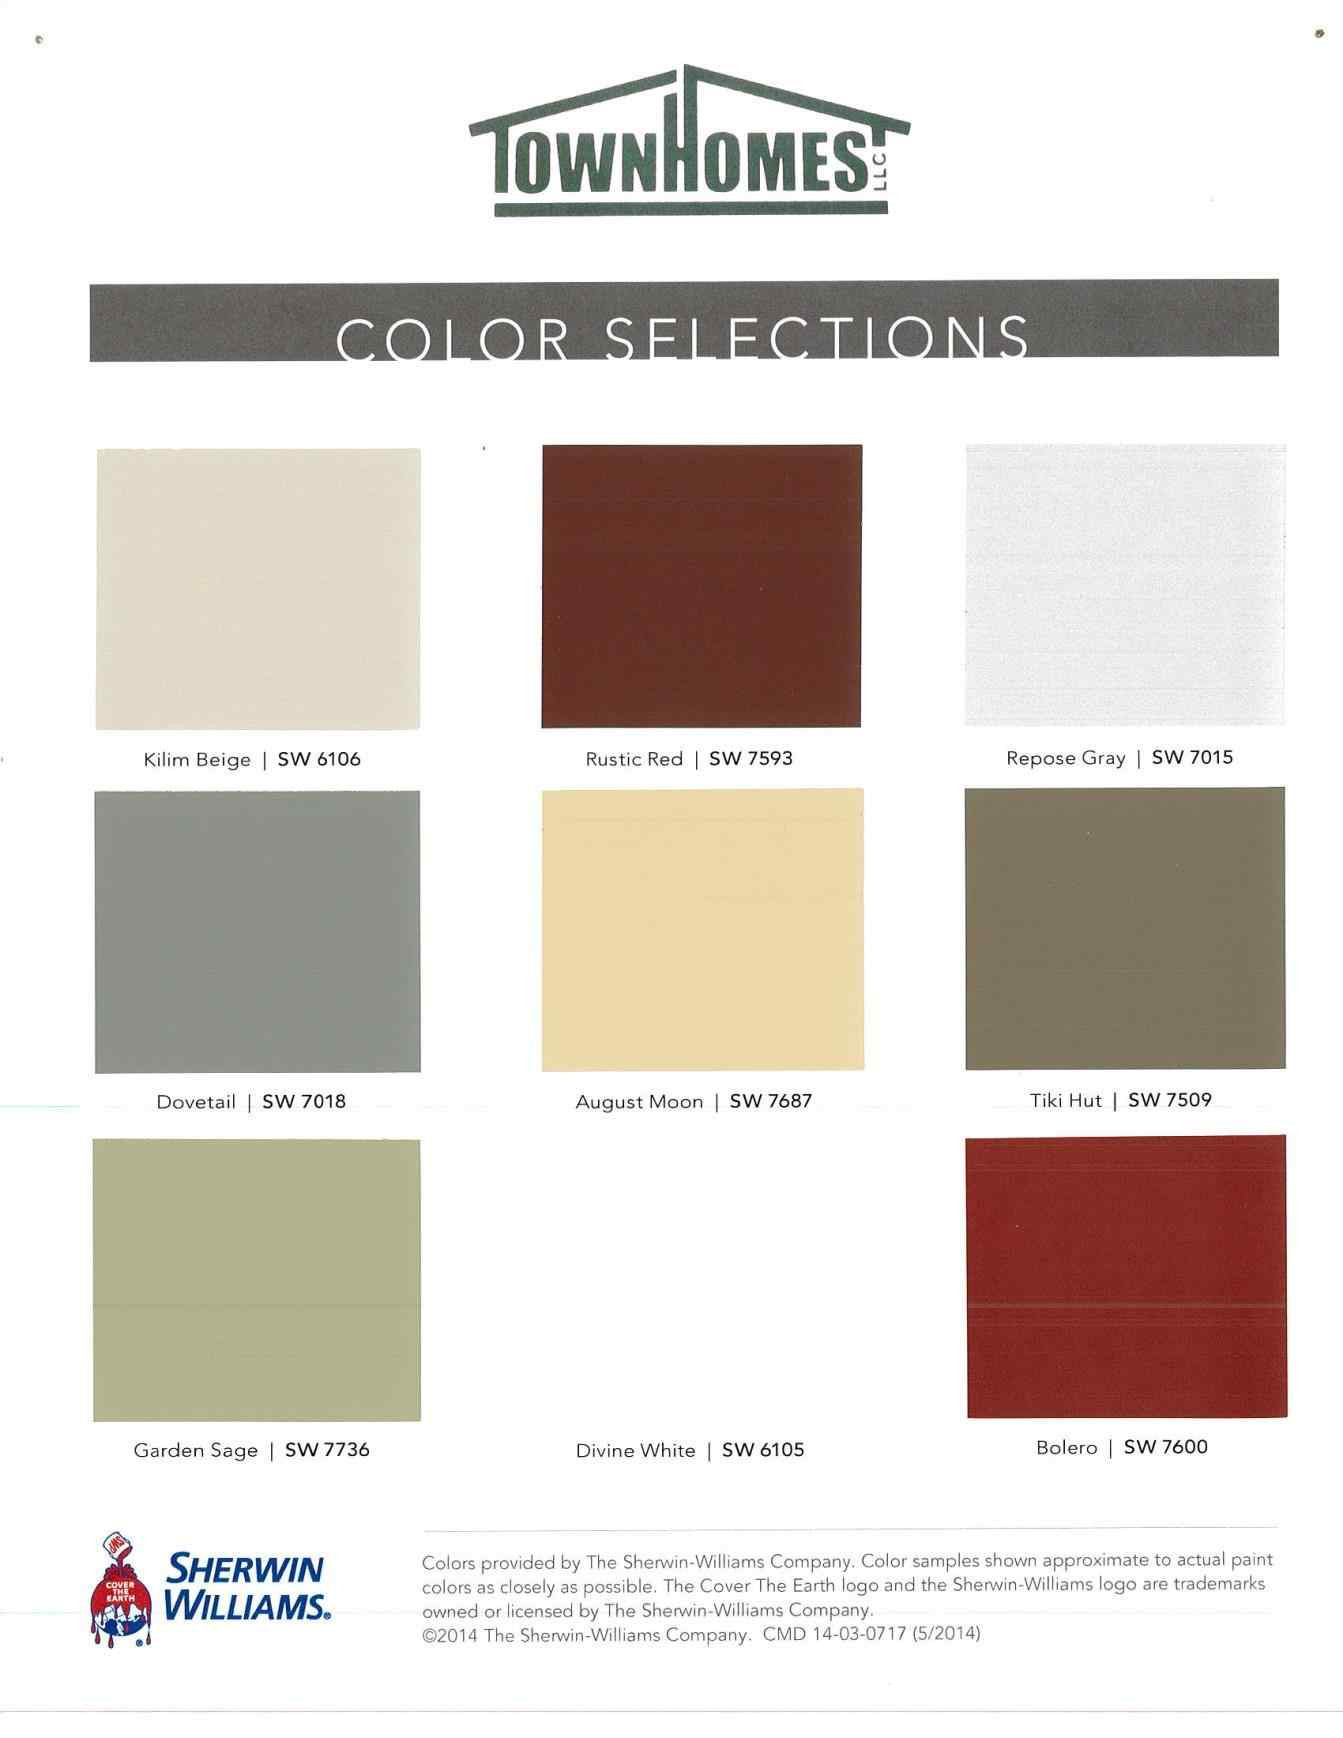 Best ideas about Sherwin-Williams Paint Colors . Save or Pin Sherwin Williams Floor Paint Colors Now.